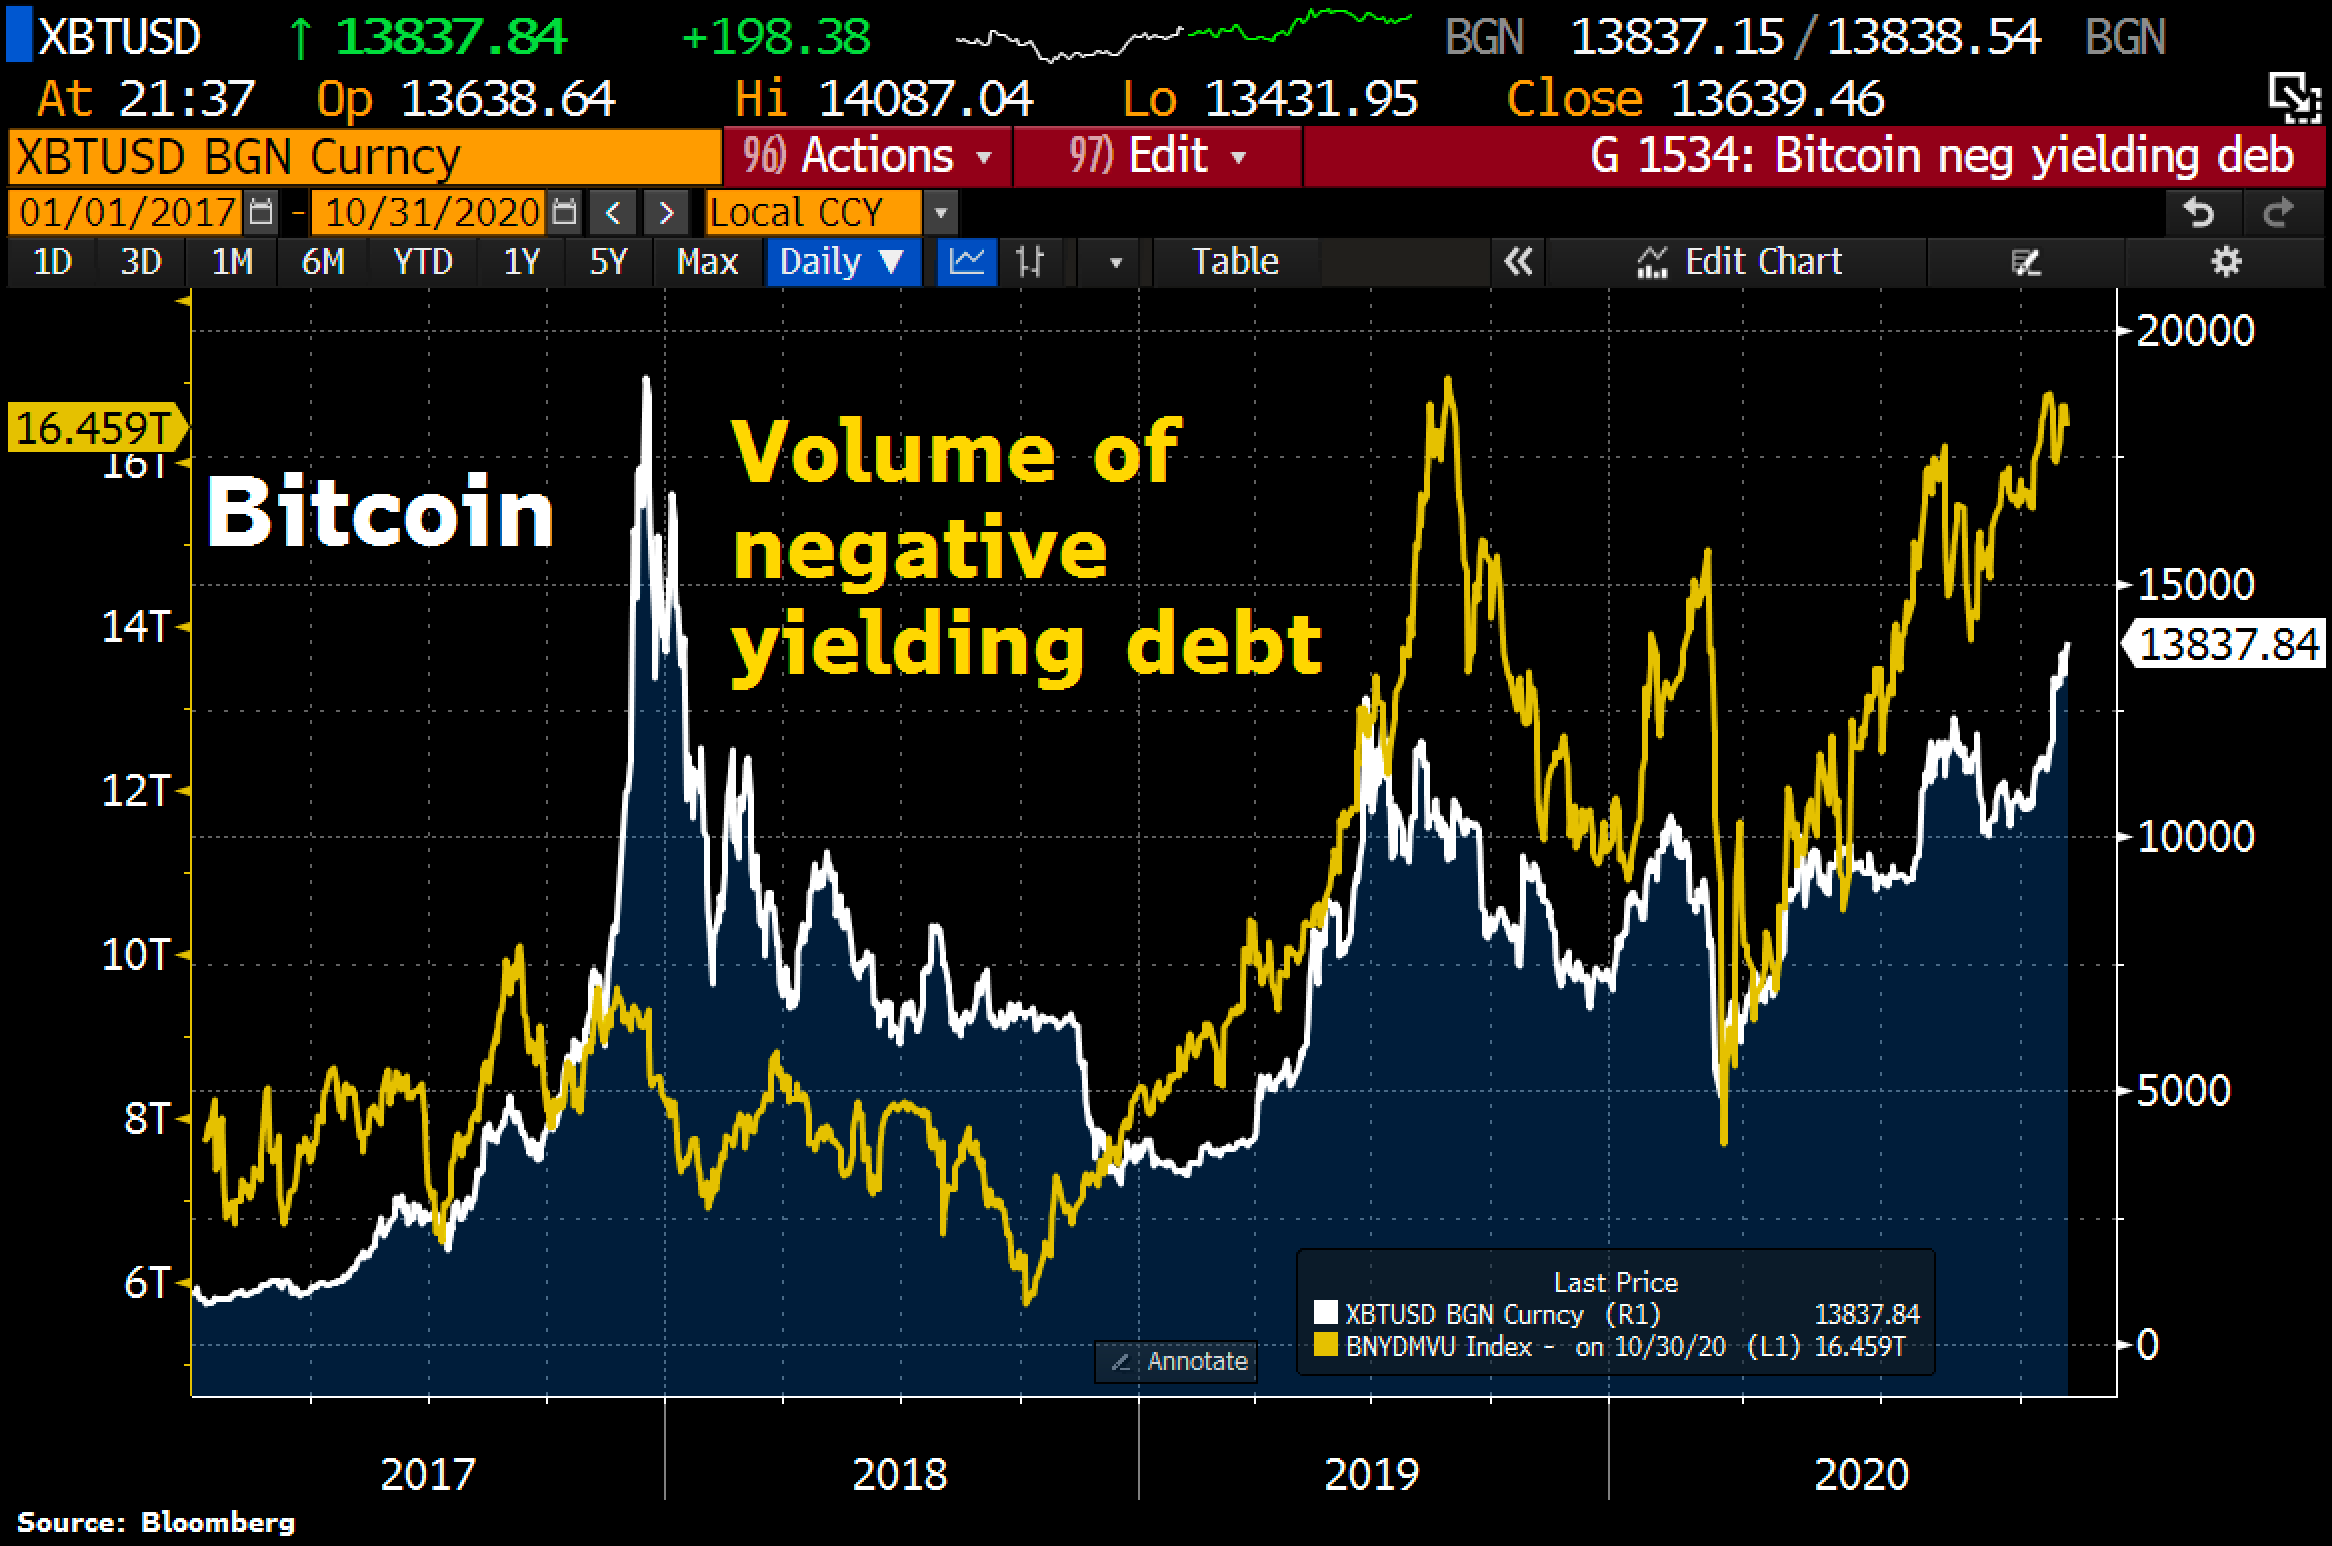 Volume of negative yielding debt vs. Bitcoin